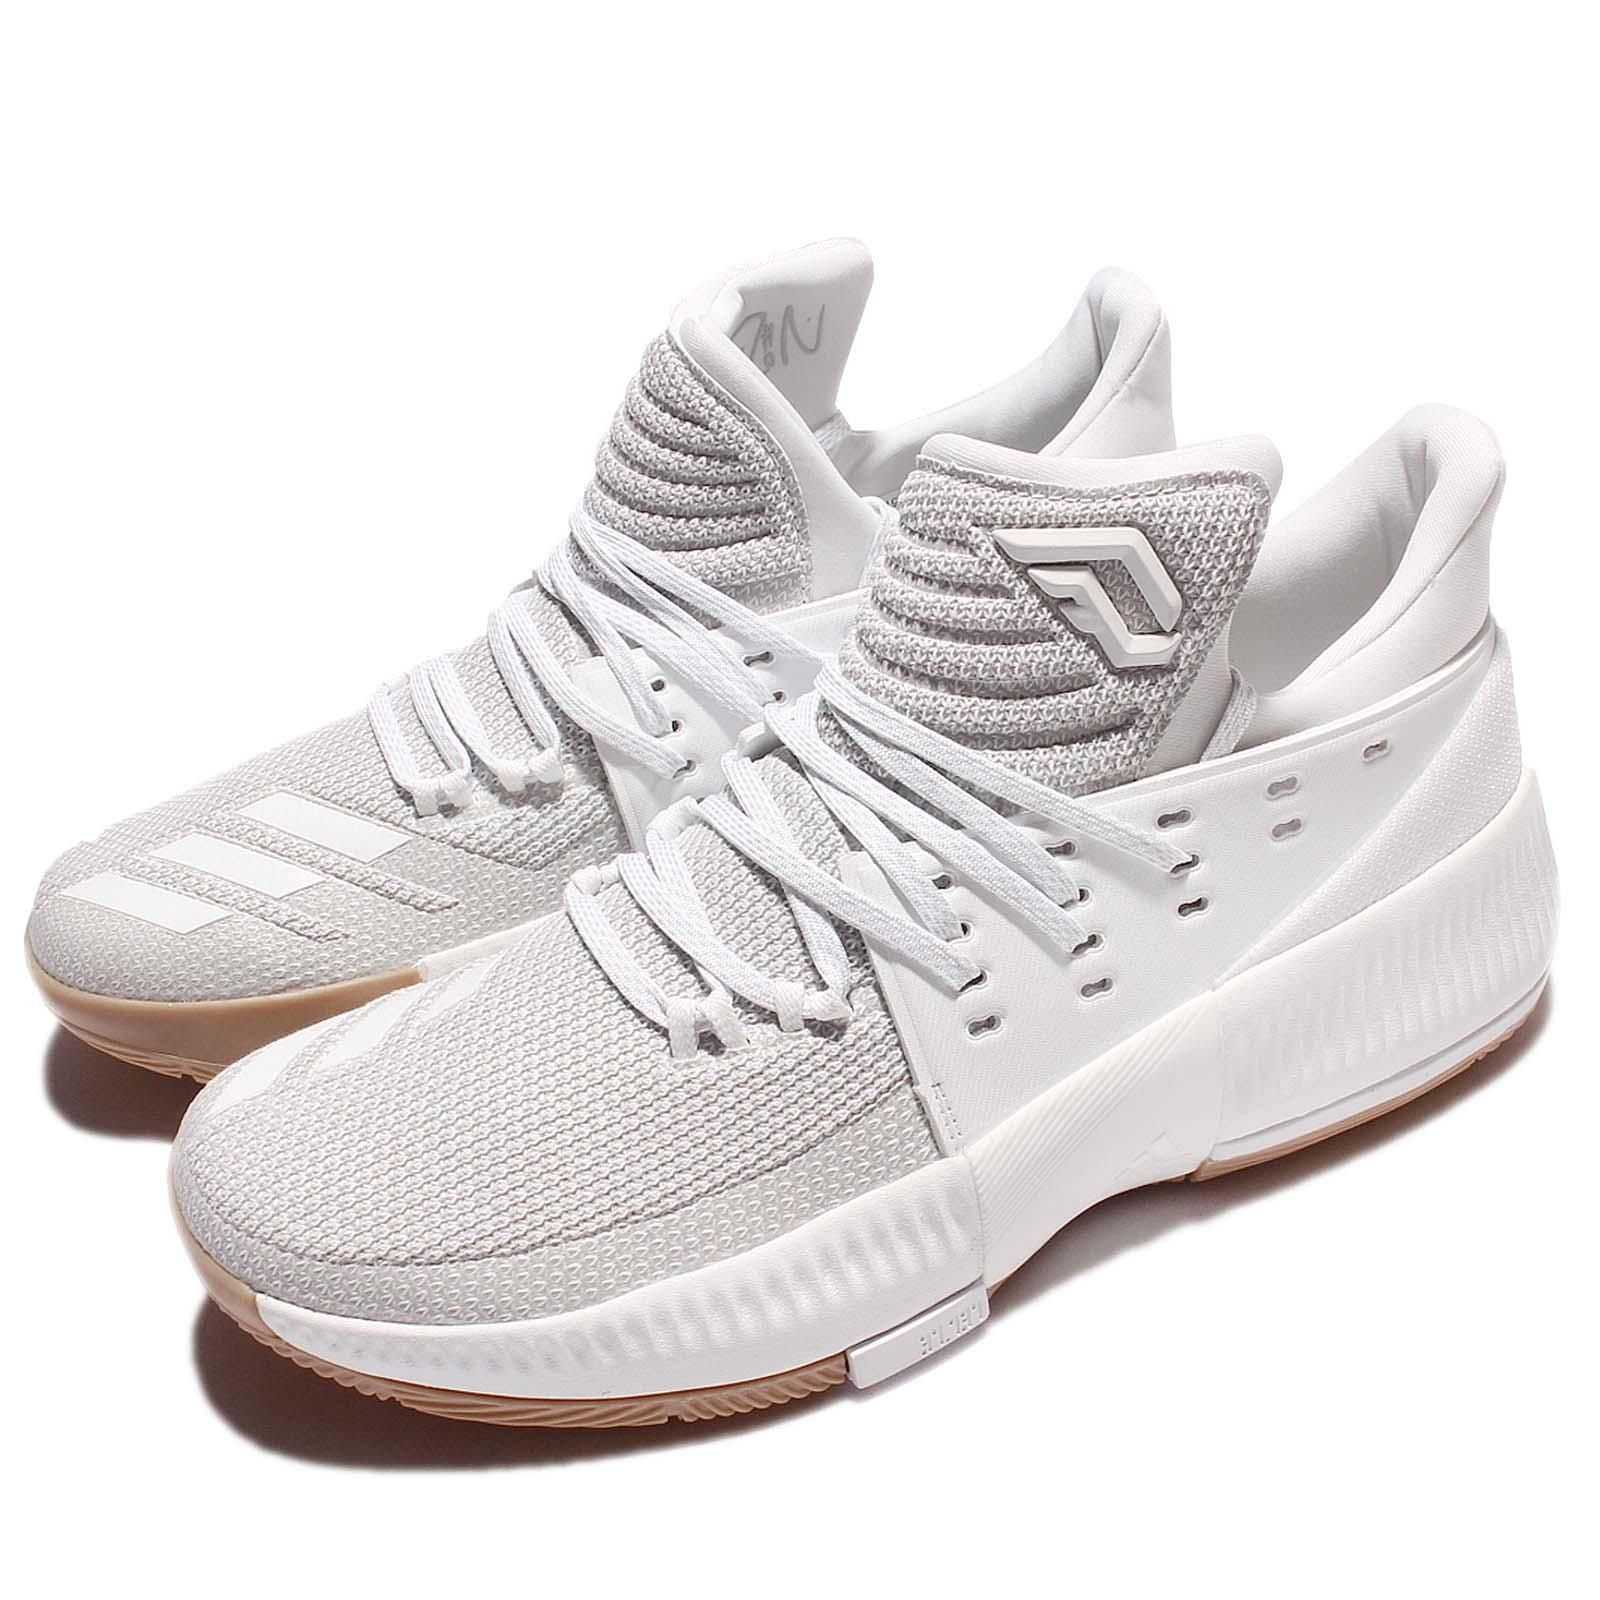 adidas D Lillard 3 Damian Lillard Legacy White Gum Men Basketball Shoes  BW0323 f95734a4954a